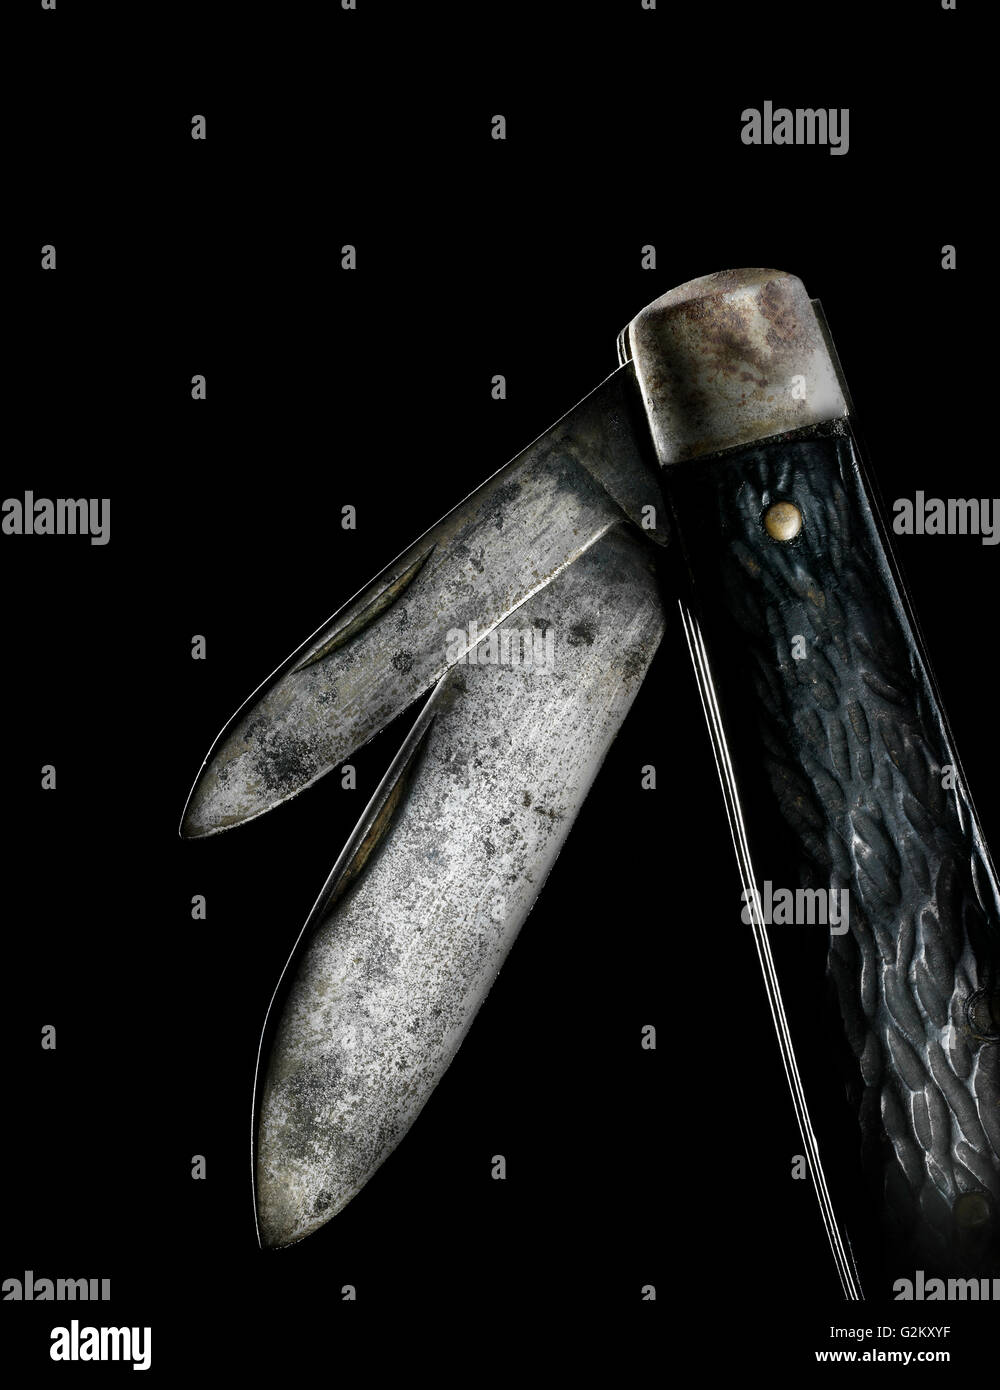 Pocket Knife Blades - Stock Image